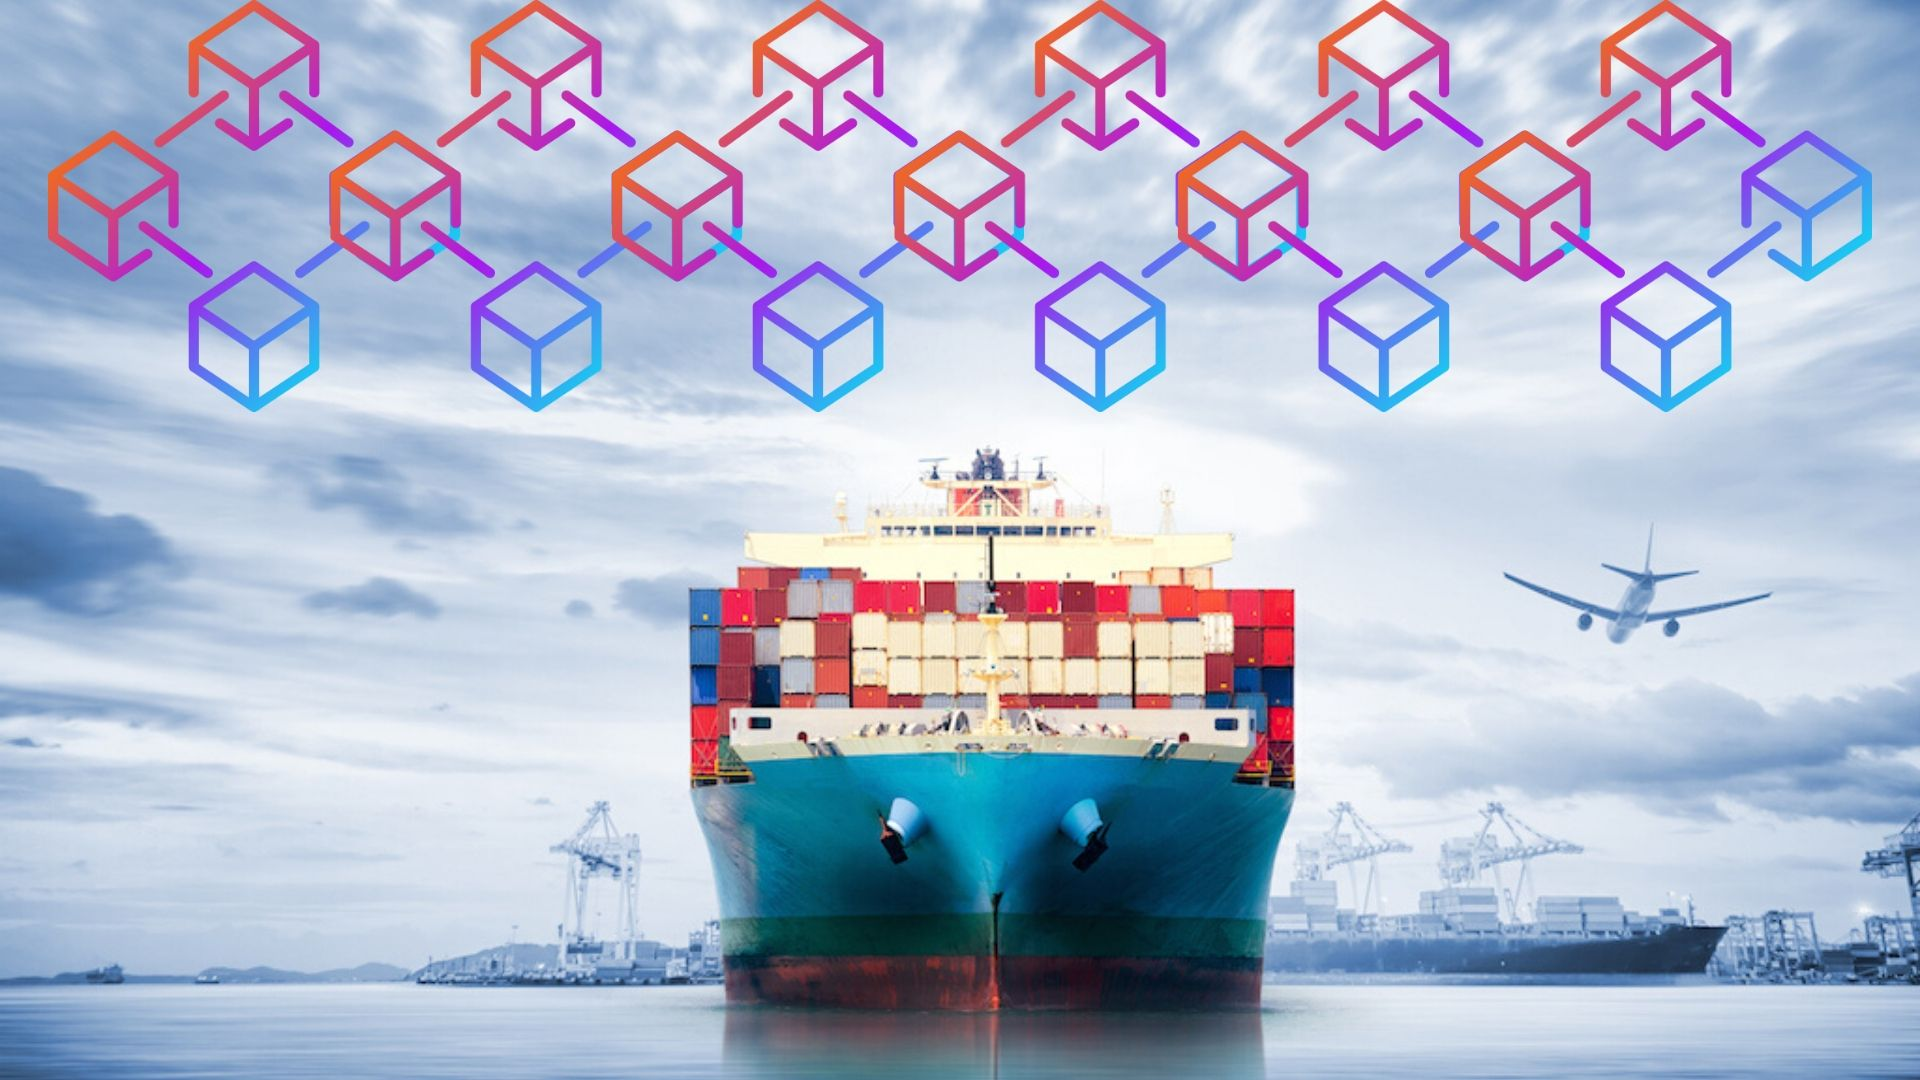 Could The Logistics Industry Start Incorporating Bitcoin Into Their Delivery Services?